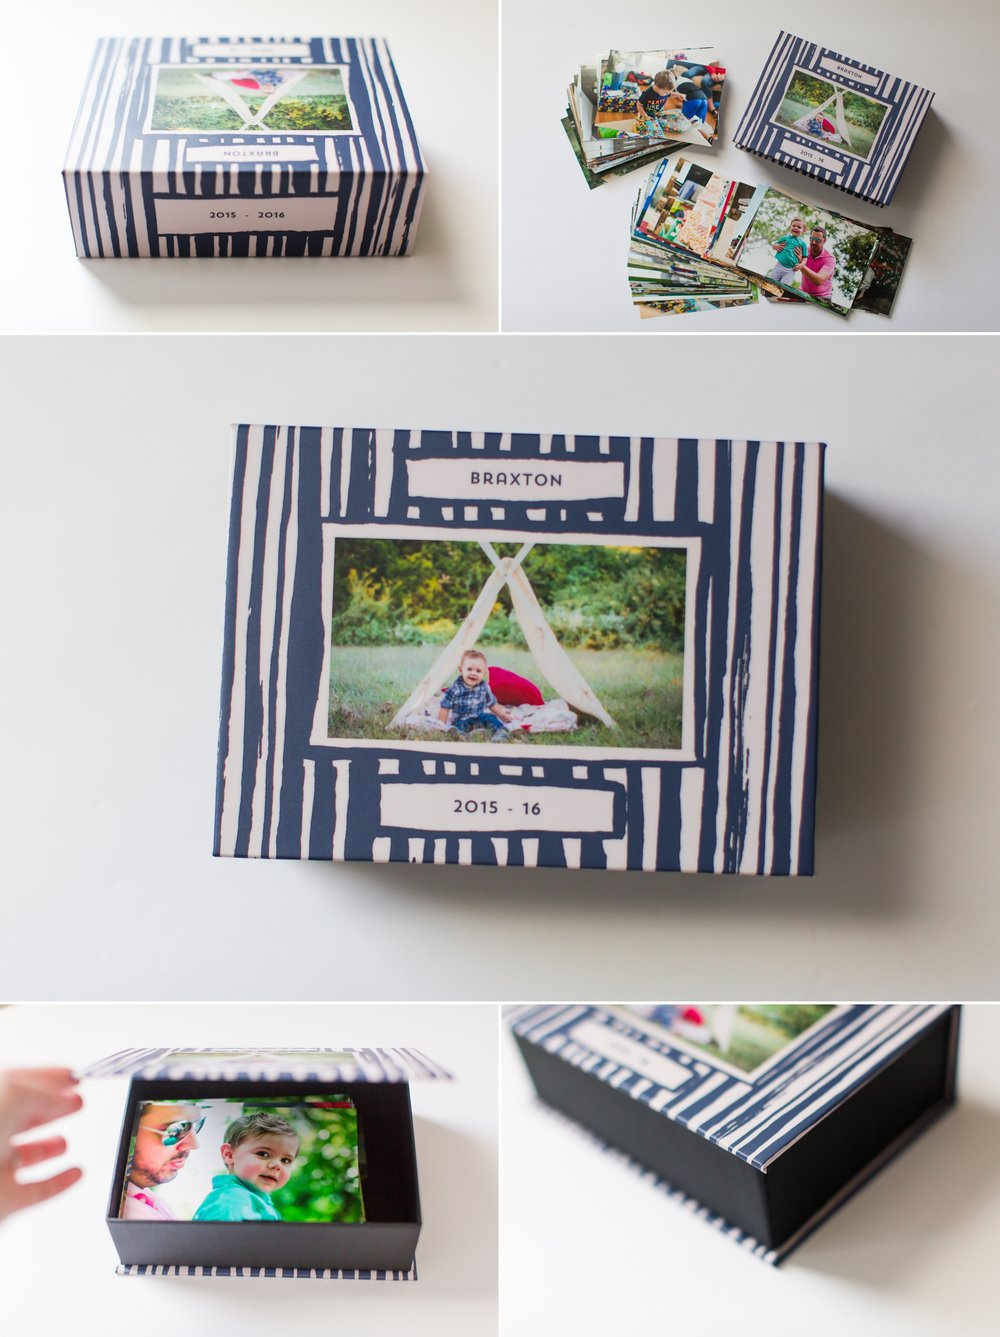 keepsake_image_photo_box_prints_photo_book_alternative_personal_mementos_less_time_easy_ideas_bookshelf 3